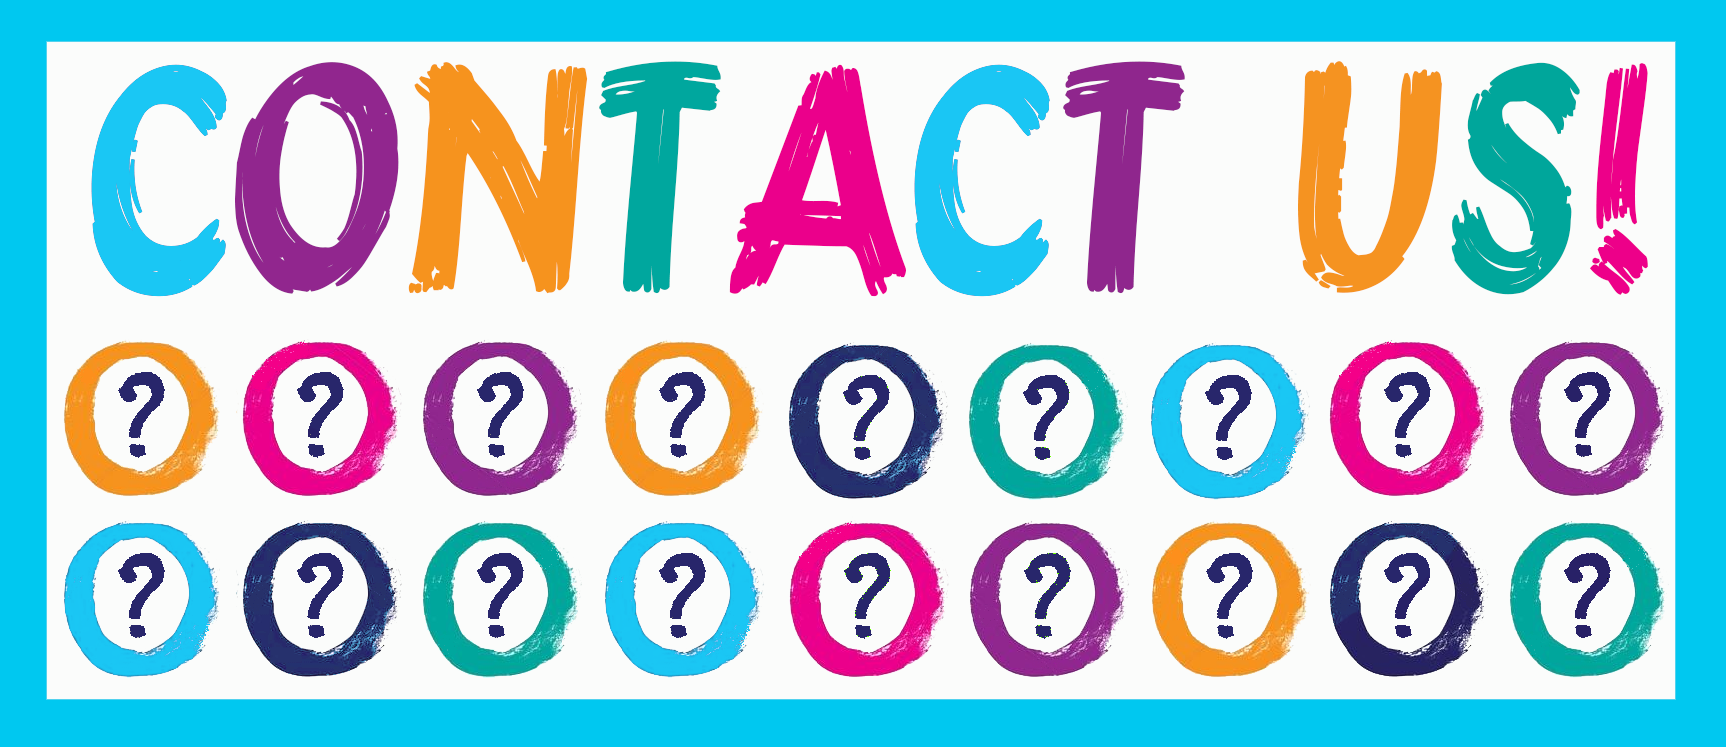 Contact Us Image (Border - Turquoise).png